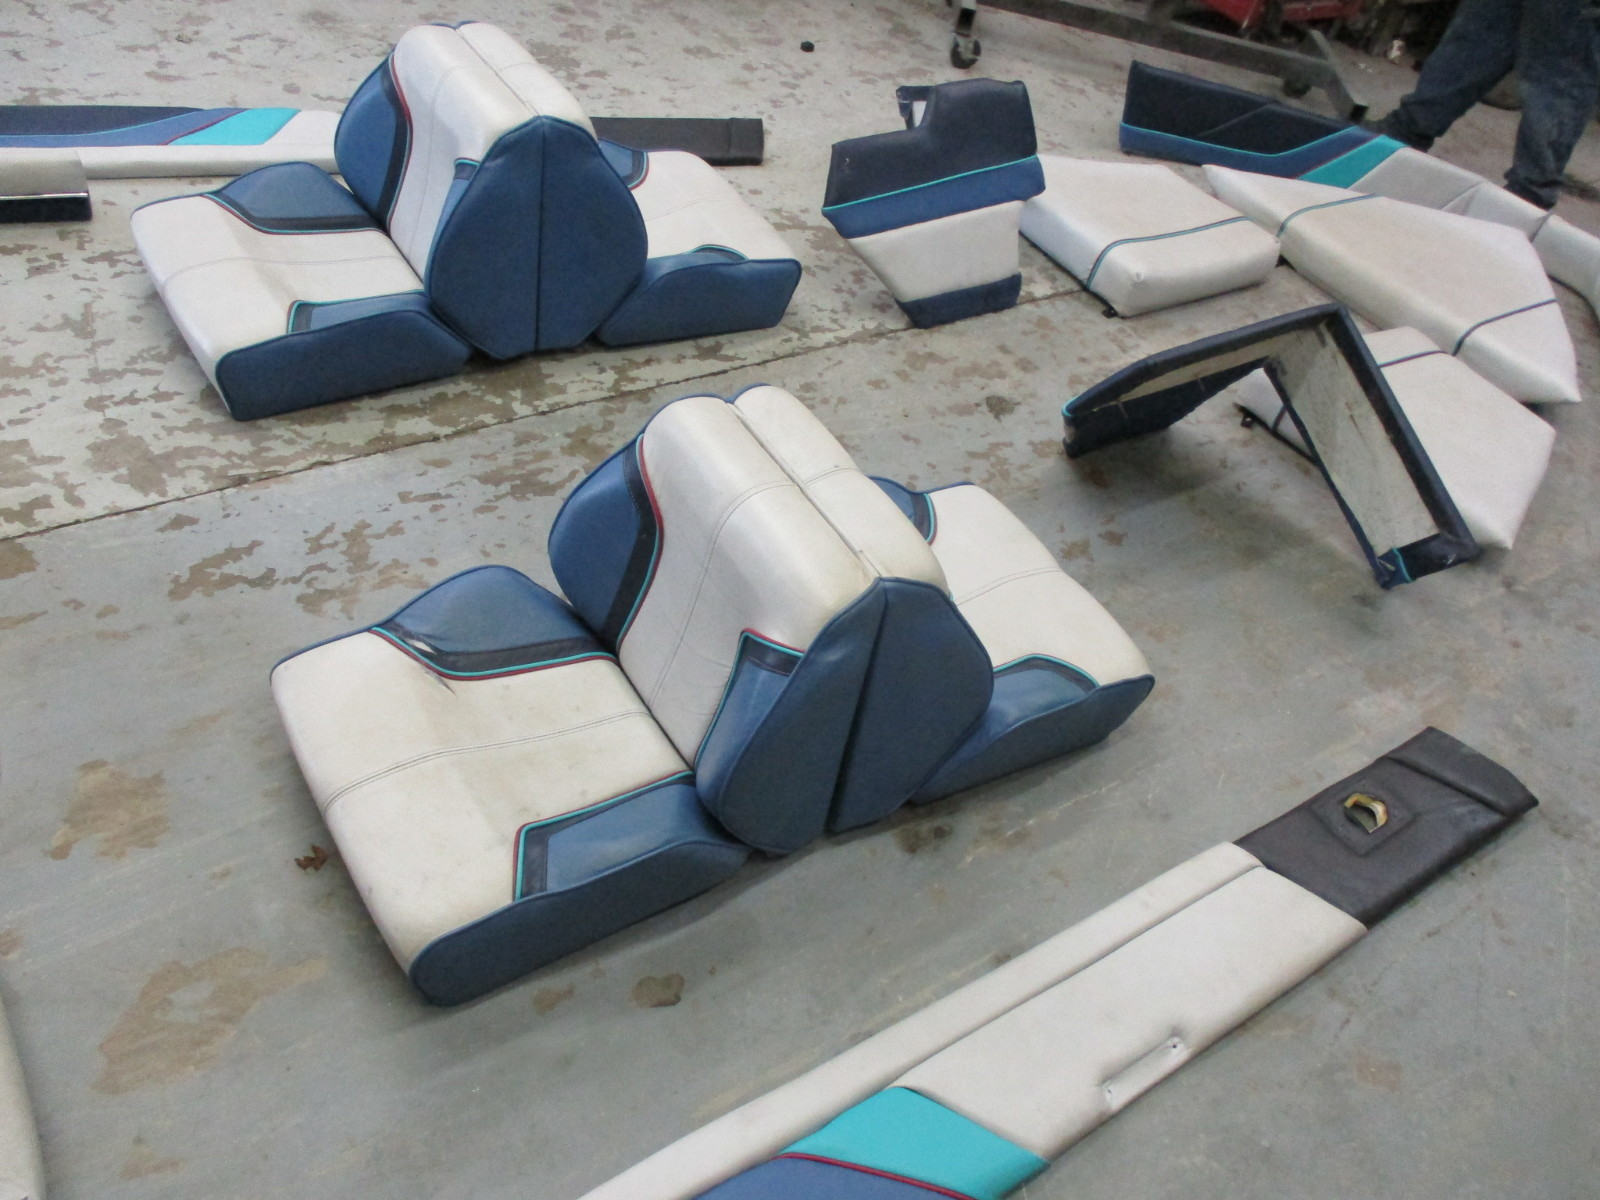 10615 1987 17 ft bayliner capri interior seats cushions back rest side wall 8 1989 bayliner capri seat covers velcromag 1992 bayliner capri wiring diagram at panicattacktreatment.co